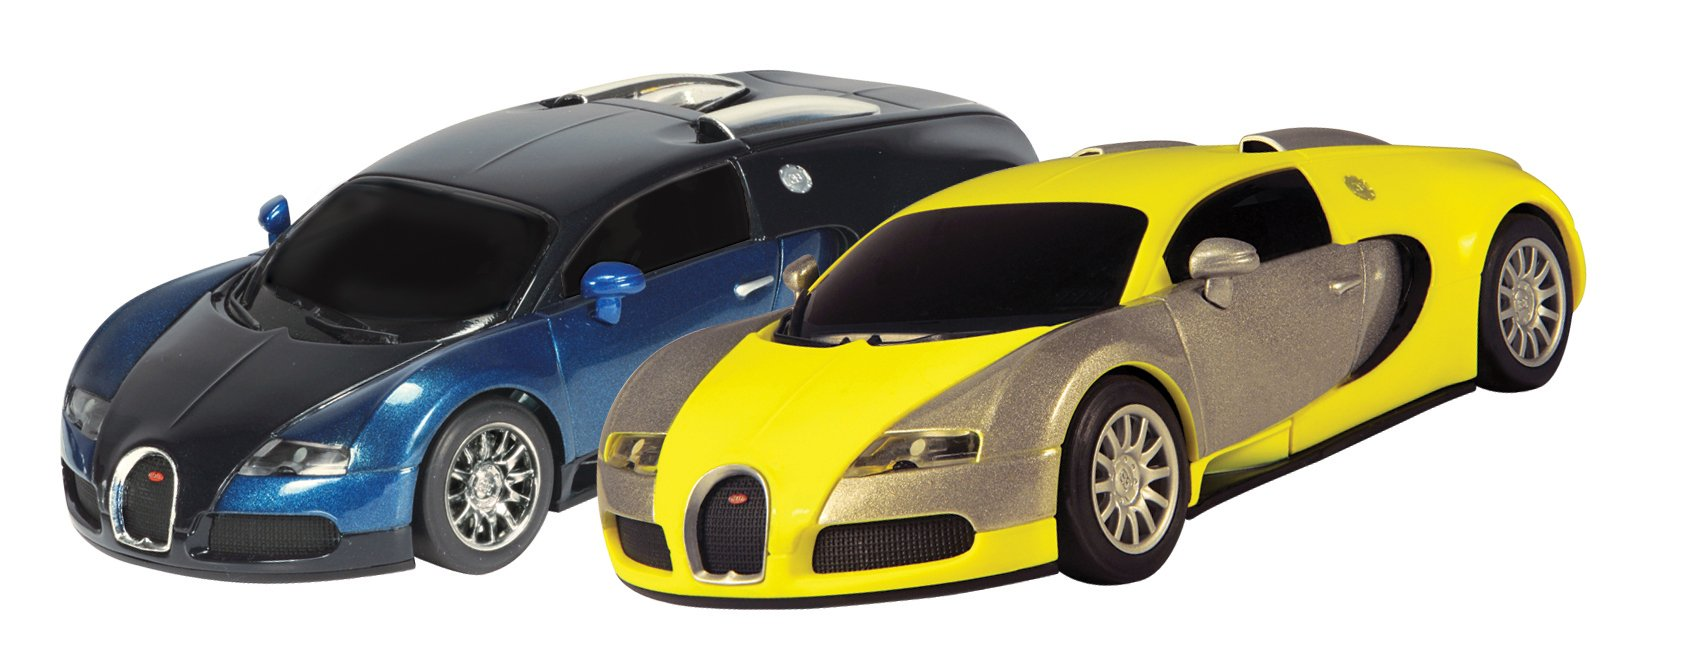 Scalextric 1:32 Supercar Race Set (C1297T) by Scalextric (Image #2)